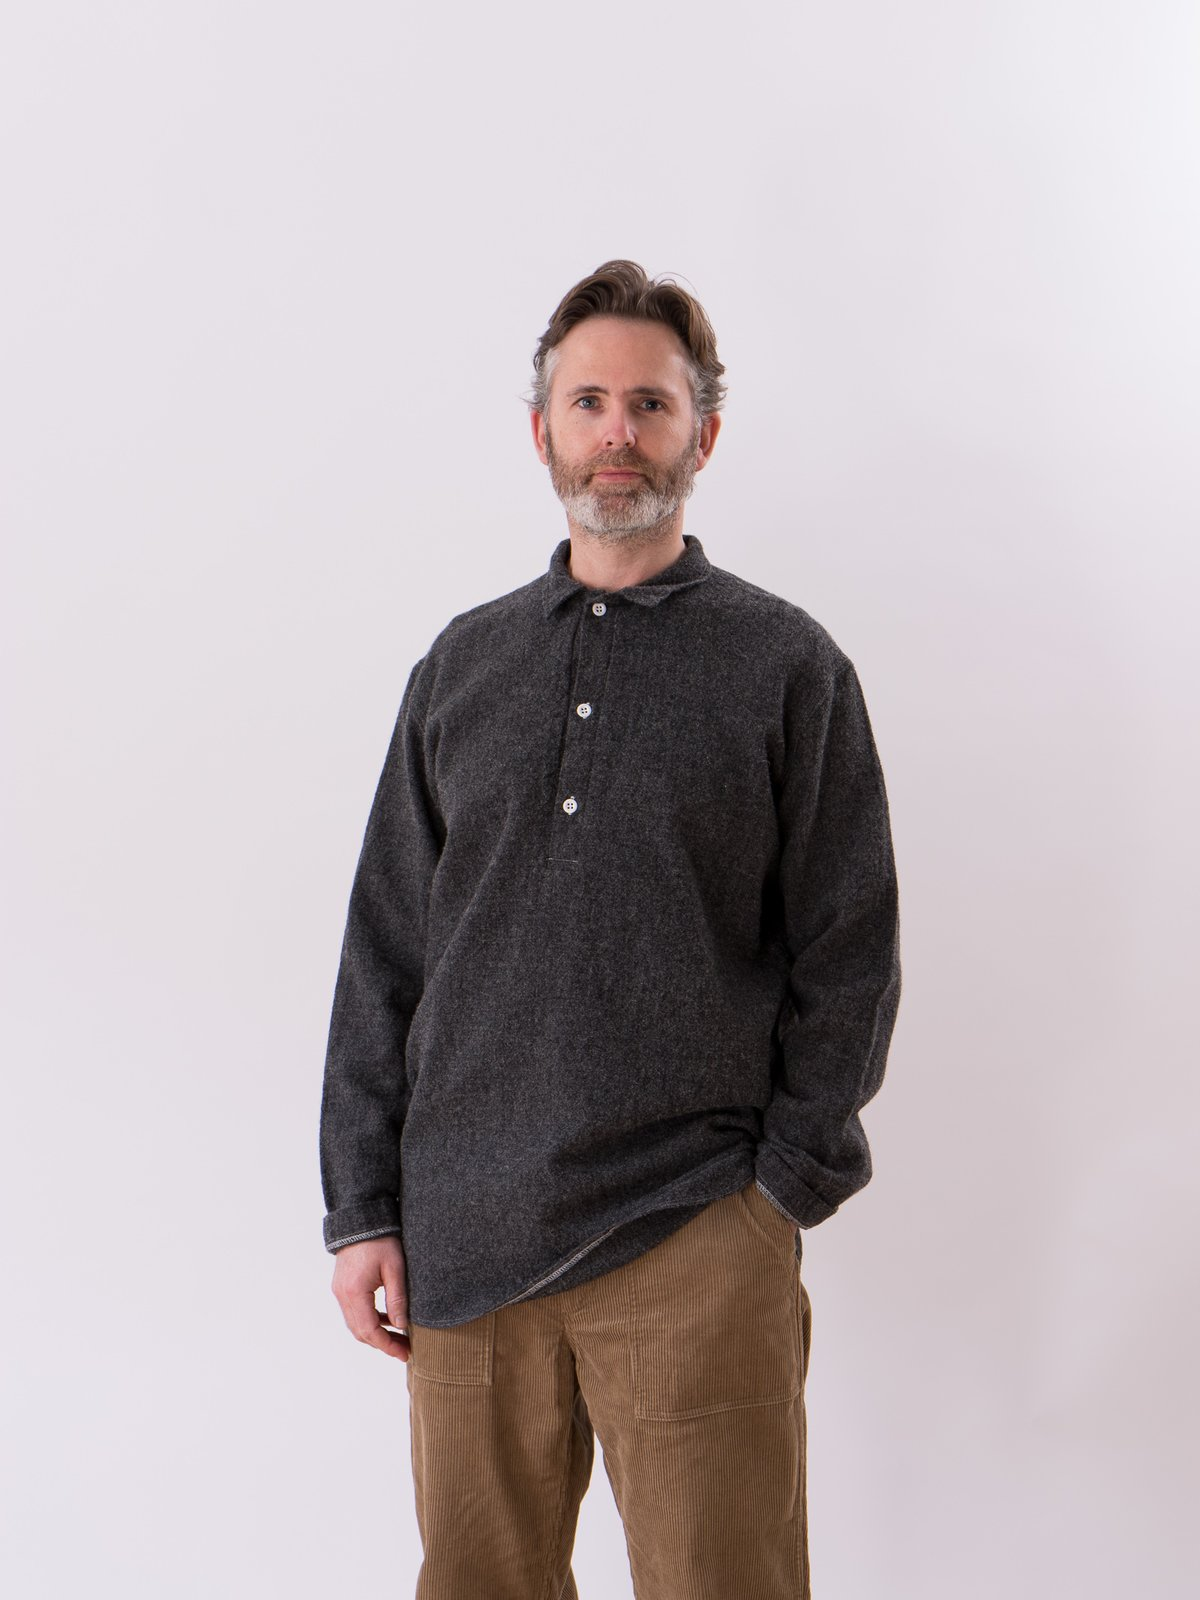 Charcoal Weavers Stock Pullover Tail Shirt - Image 2